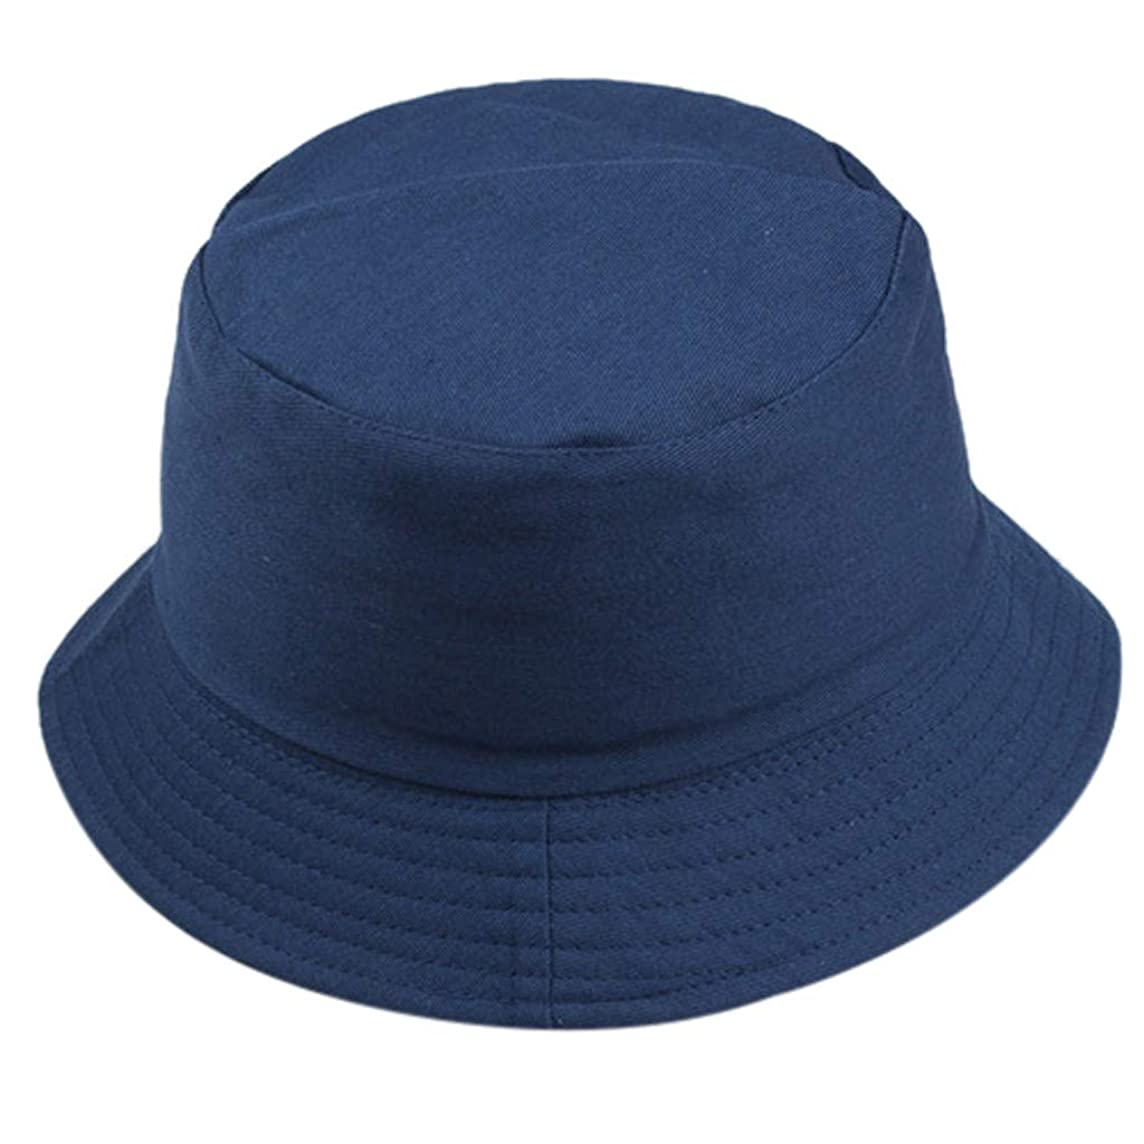 Togethor Unisex Fisherman Hat Fashion Wild Sun Protection Cap Outdoors Roll-up Wide Brim Dome Straw Summer